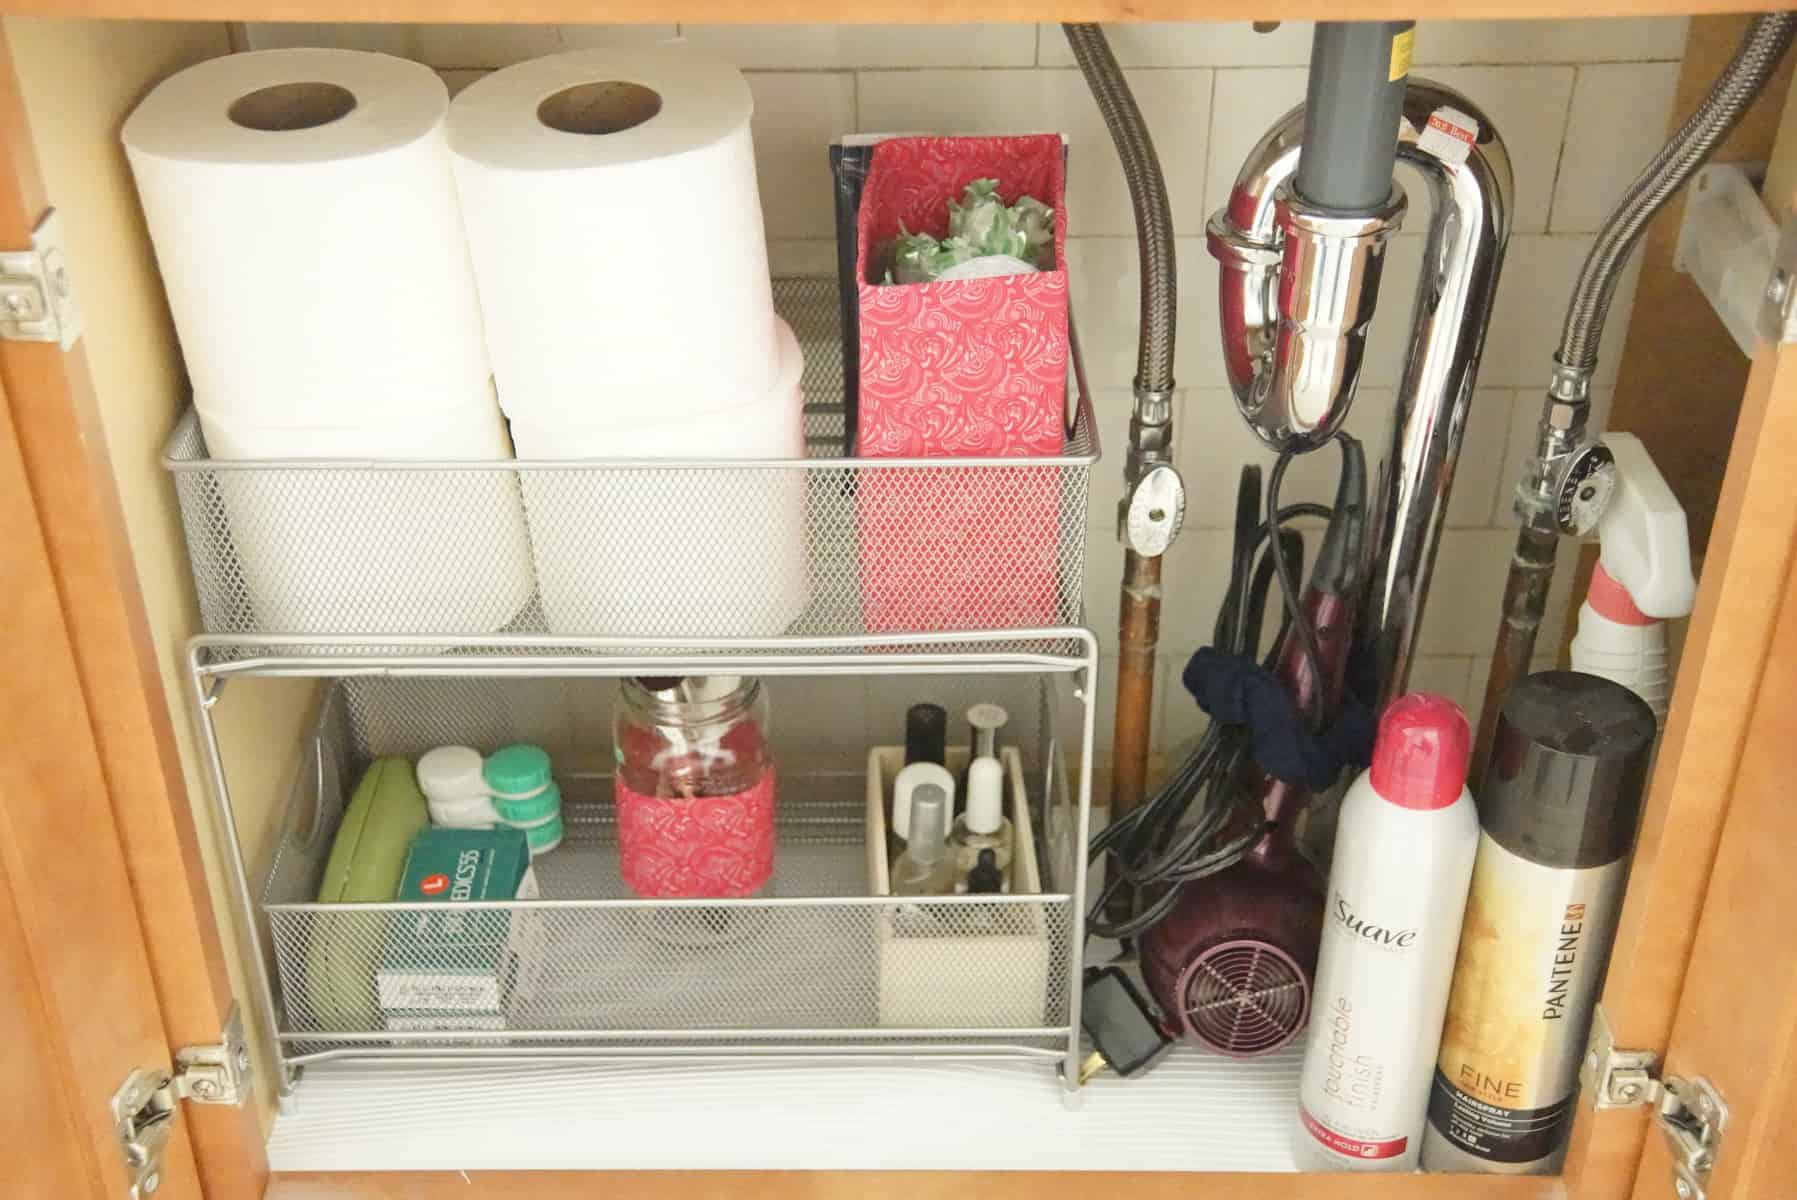 Organizing under bathroom sinks heartwork organizing for Bathroom organizers